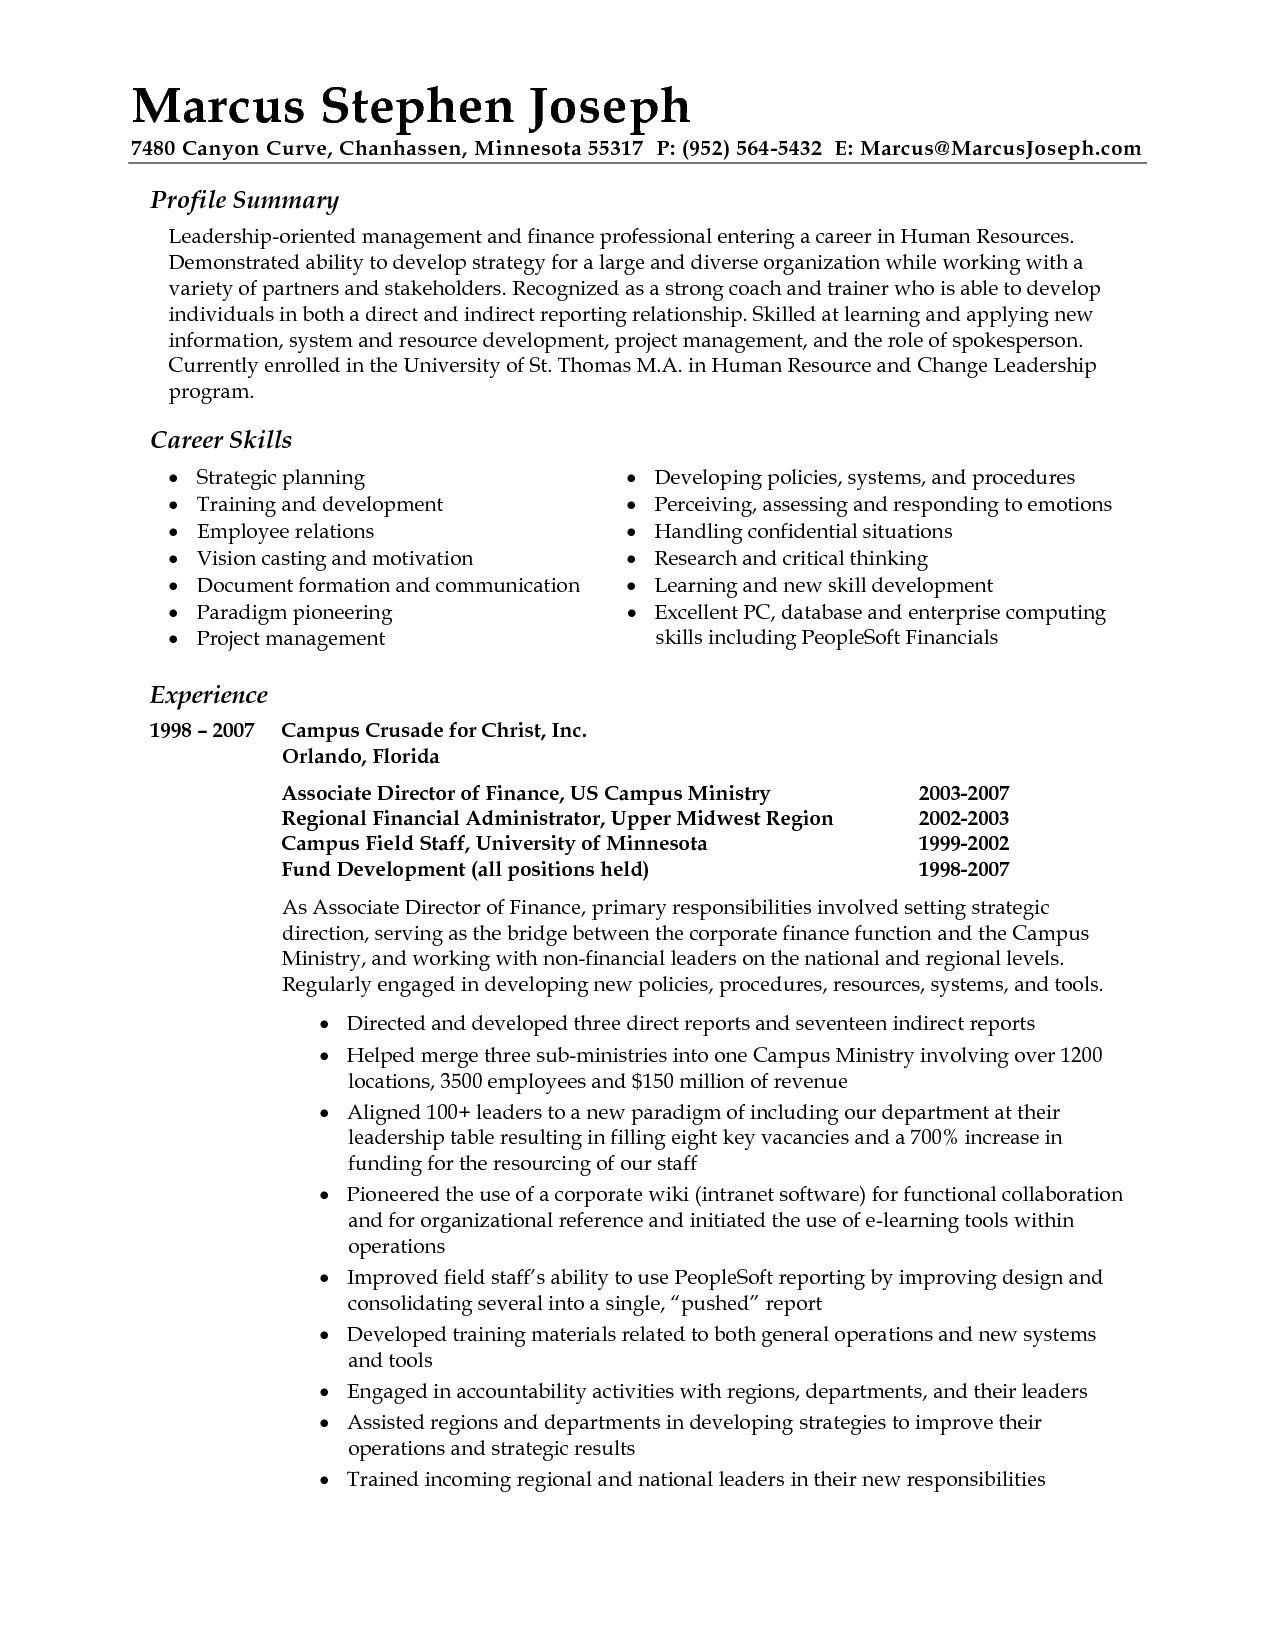 Professional Summary Resume Examples Career Summary Resume Examples D0fe552a4  resume  Resume